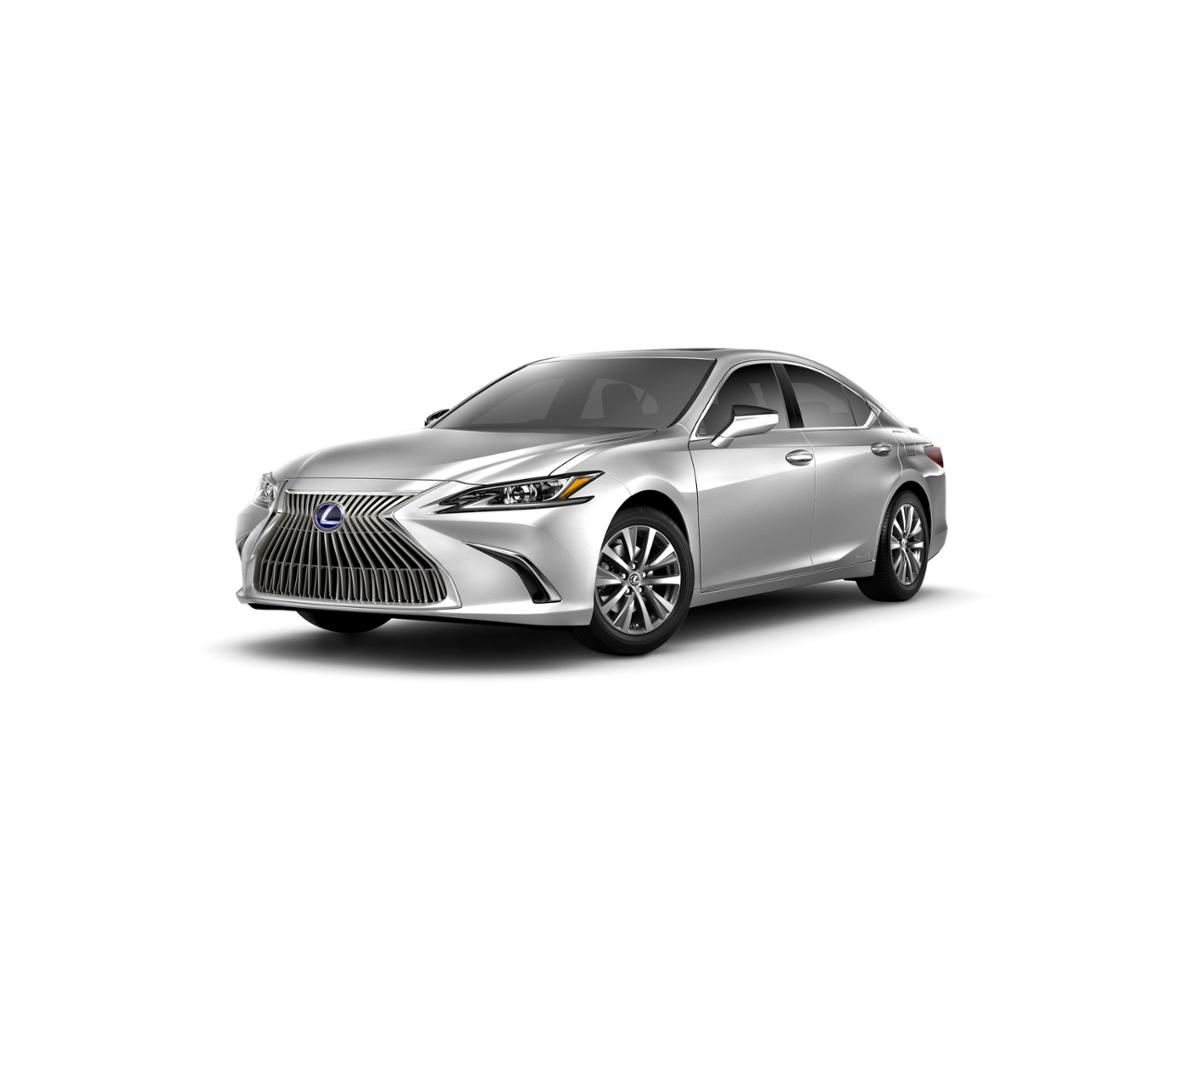 2019 Lexus ES 300h Vehicle Photo in Danvers, MA 01923